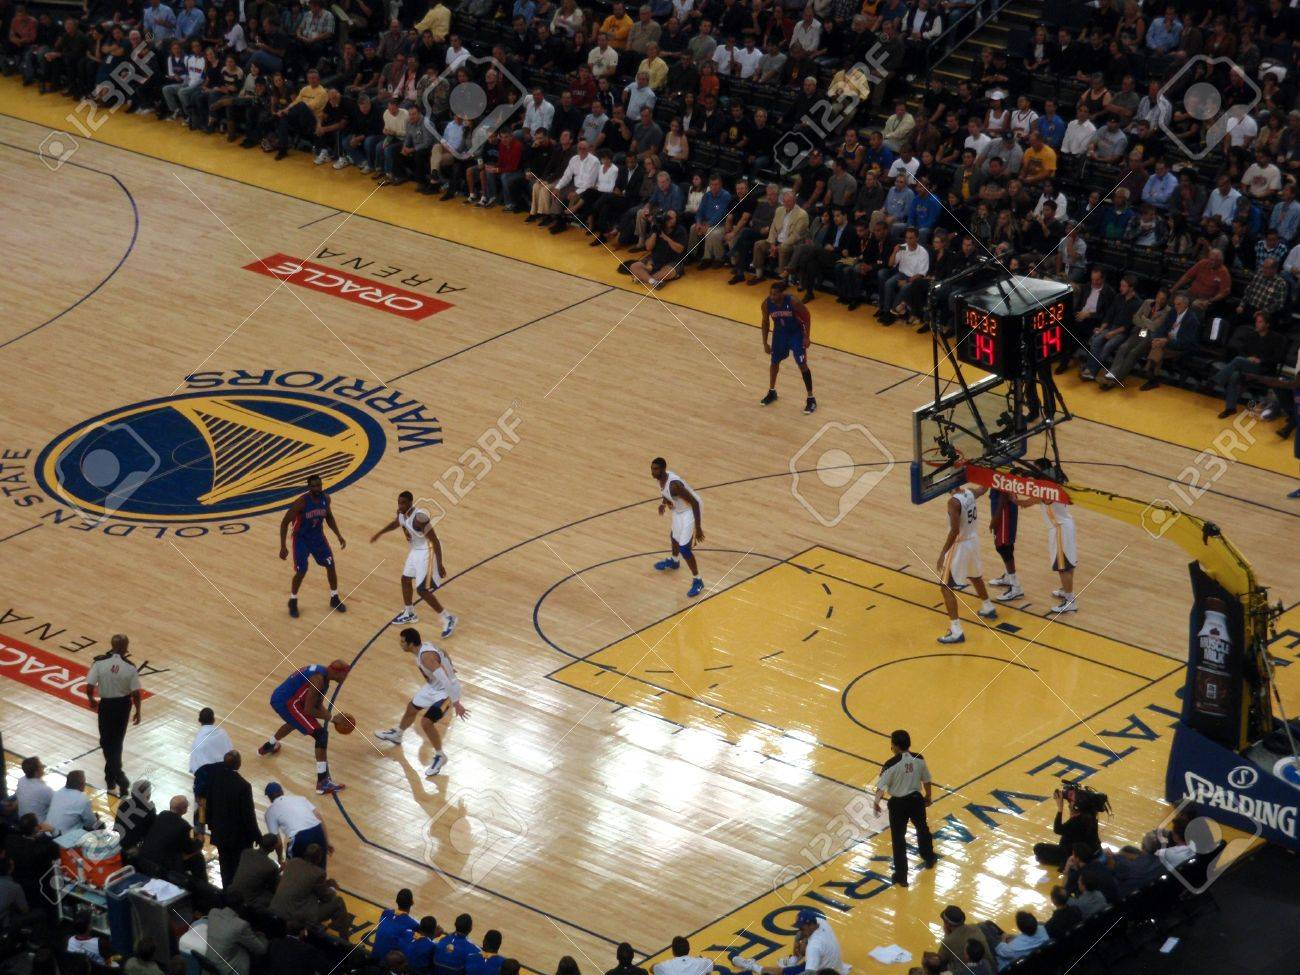 OAKLAND - NOVEMBER 15: Piston Player dribbles at 3 point line at the Oracle Arena in Oakland, California on November 15 2010. Stock Photo - 11652581